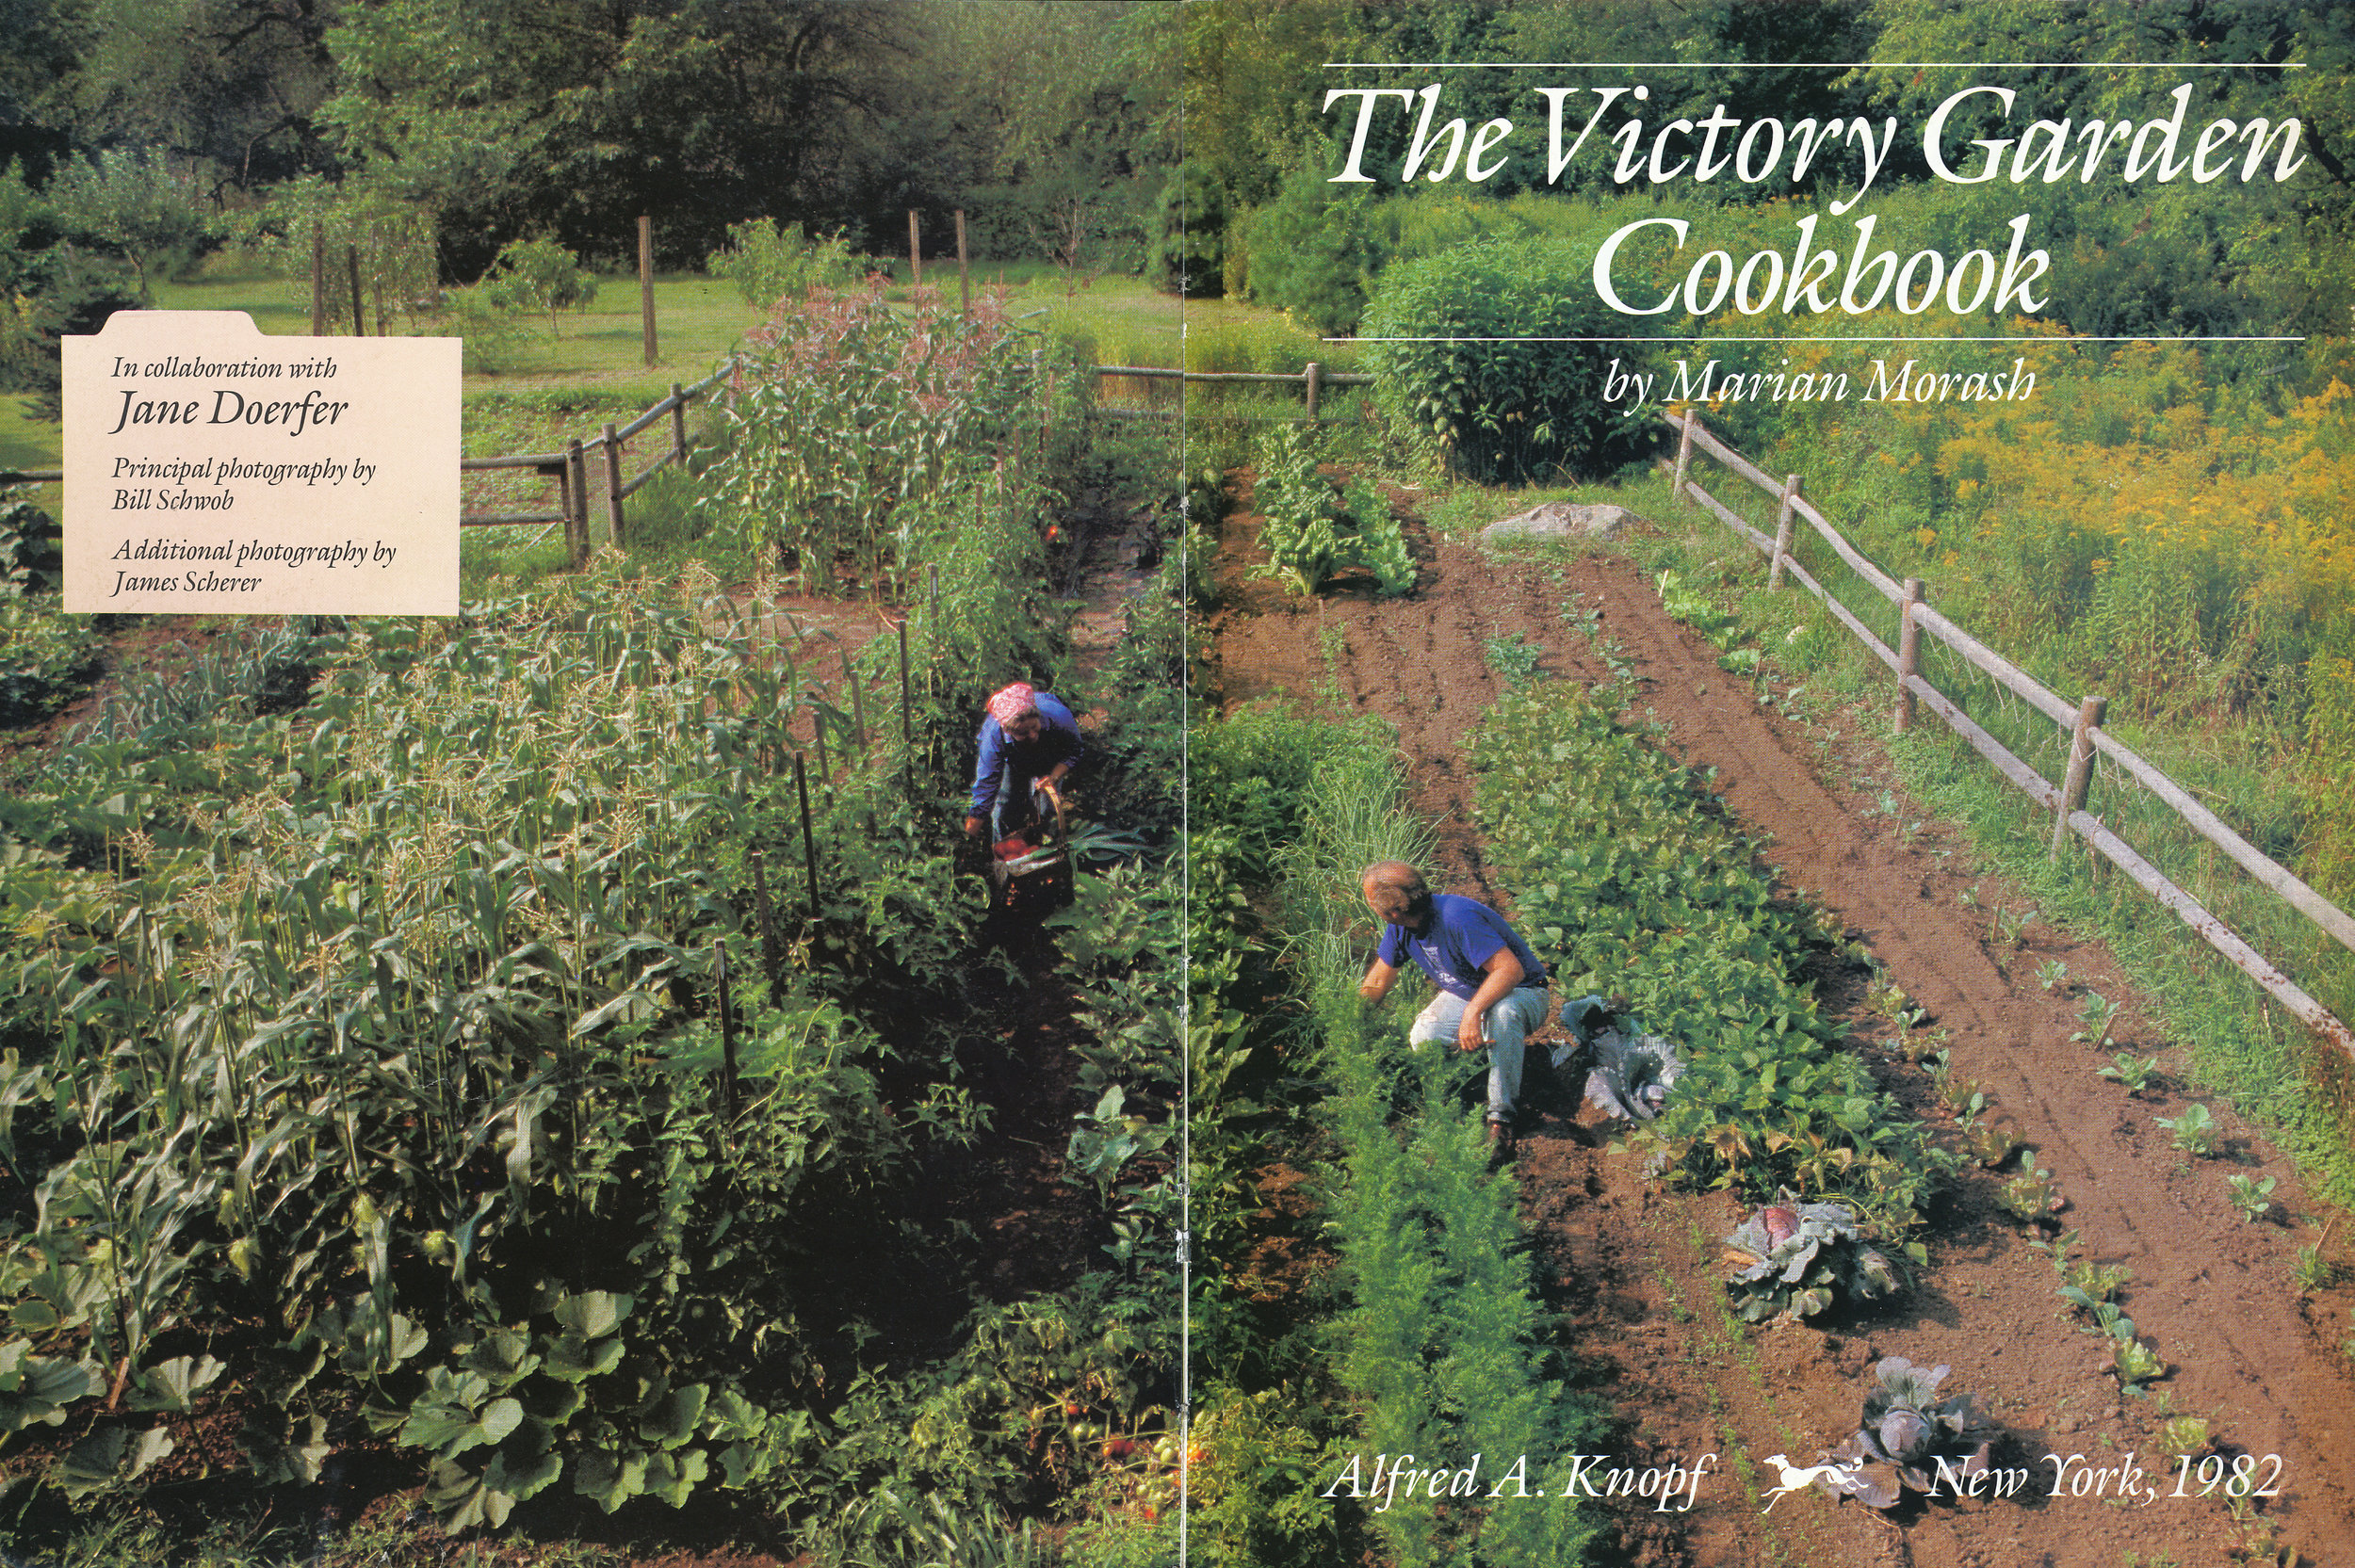 The victory garden at their home outside Boston. From 'The Victory Garden Cookbook', 1982.